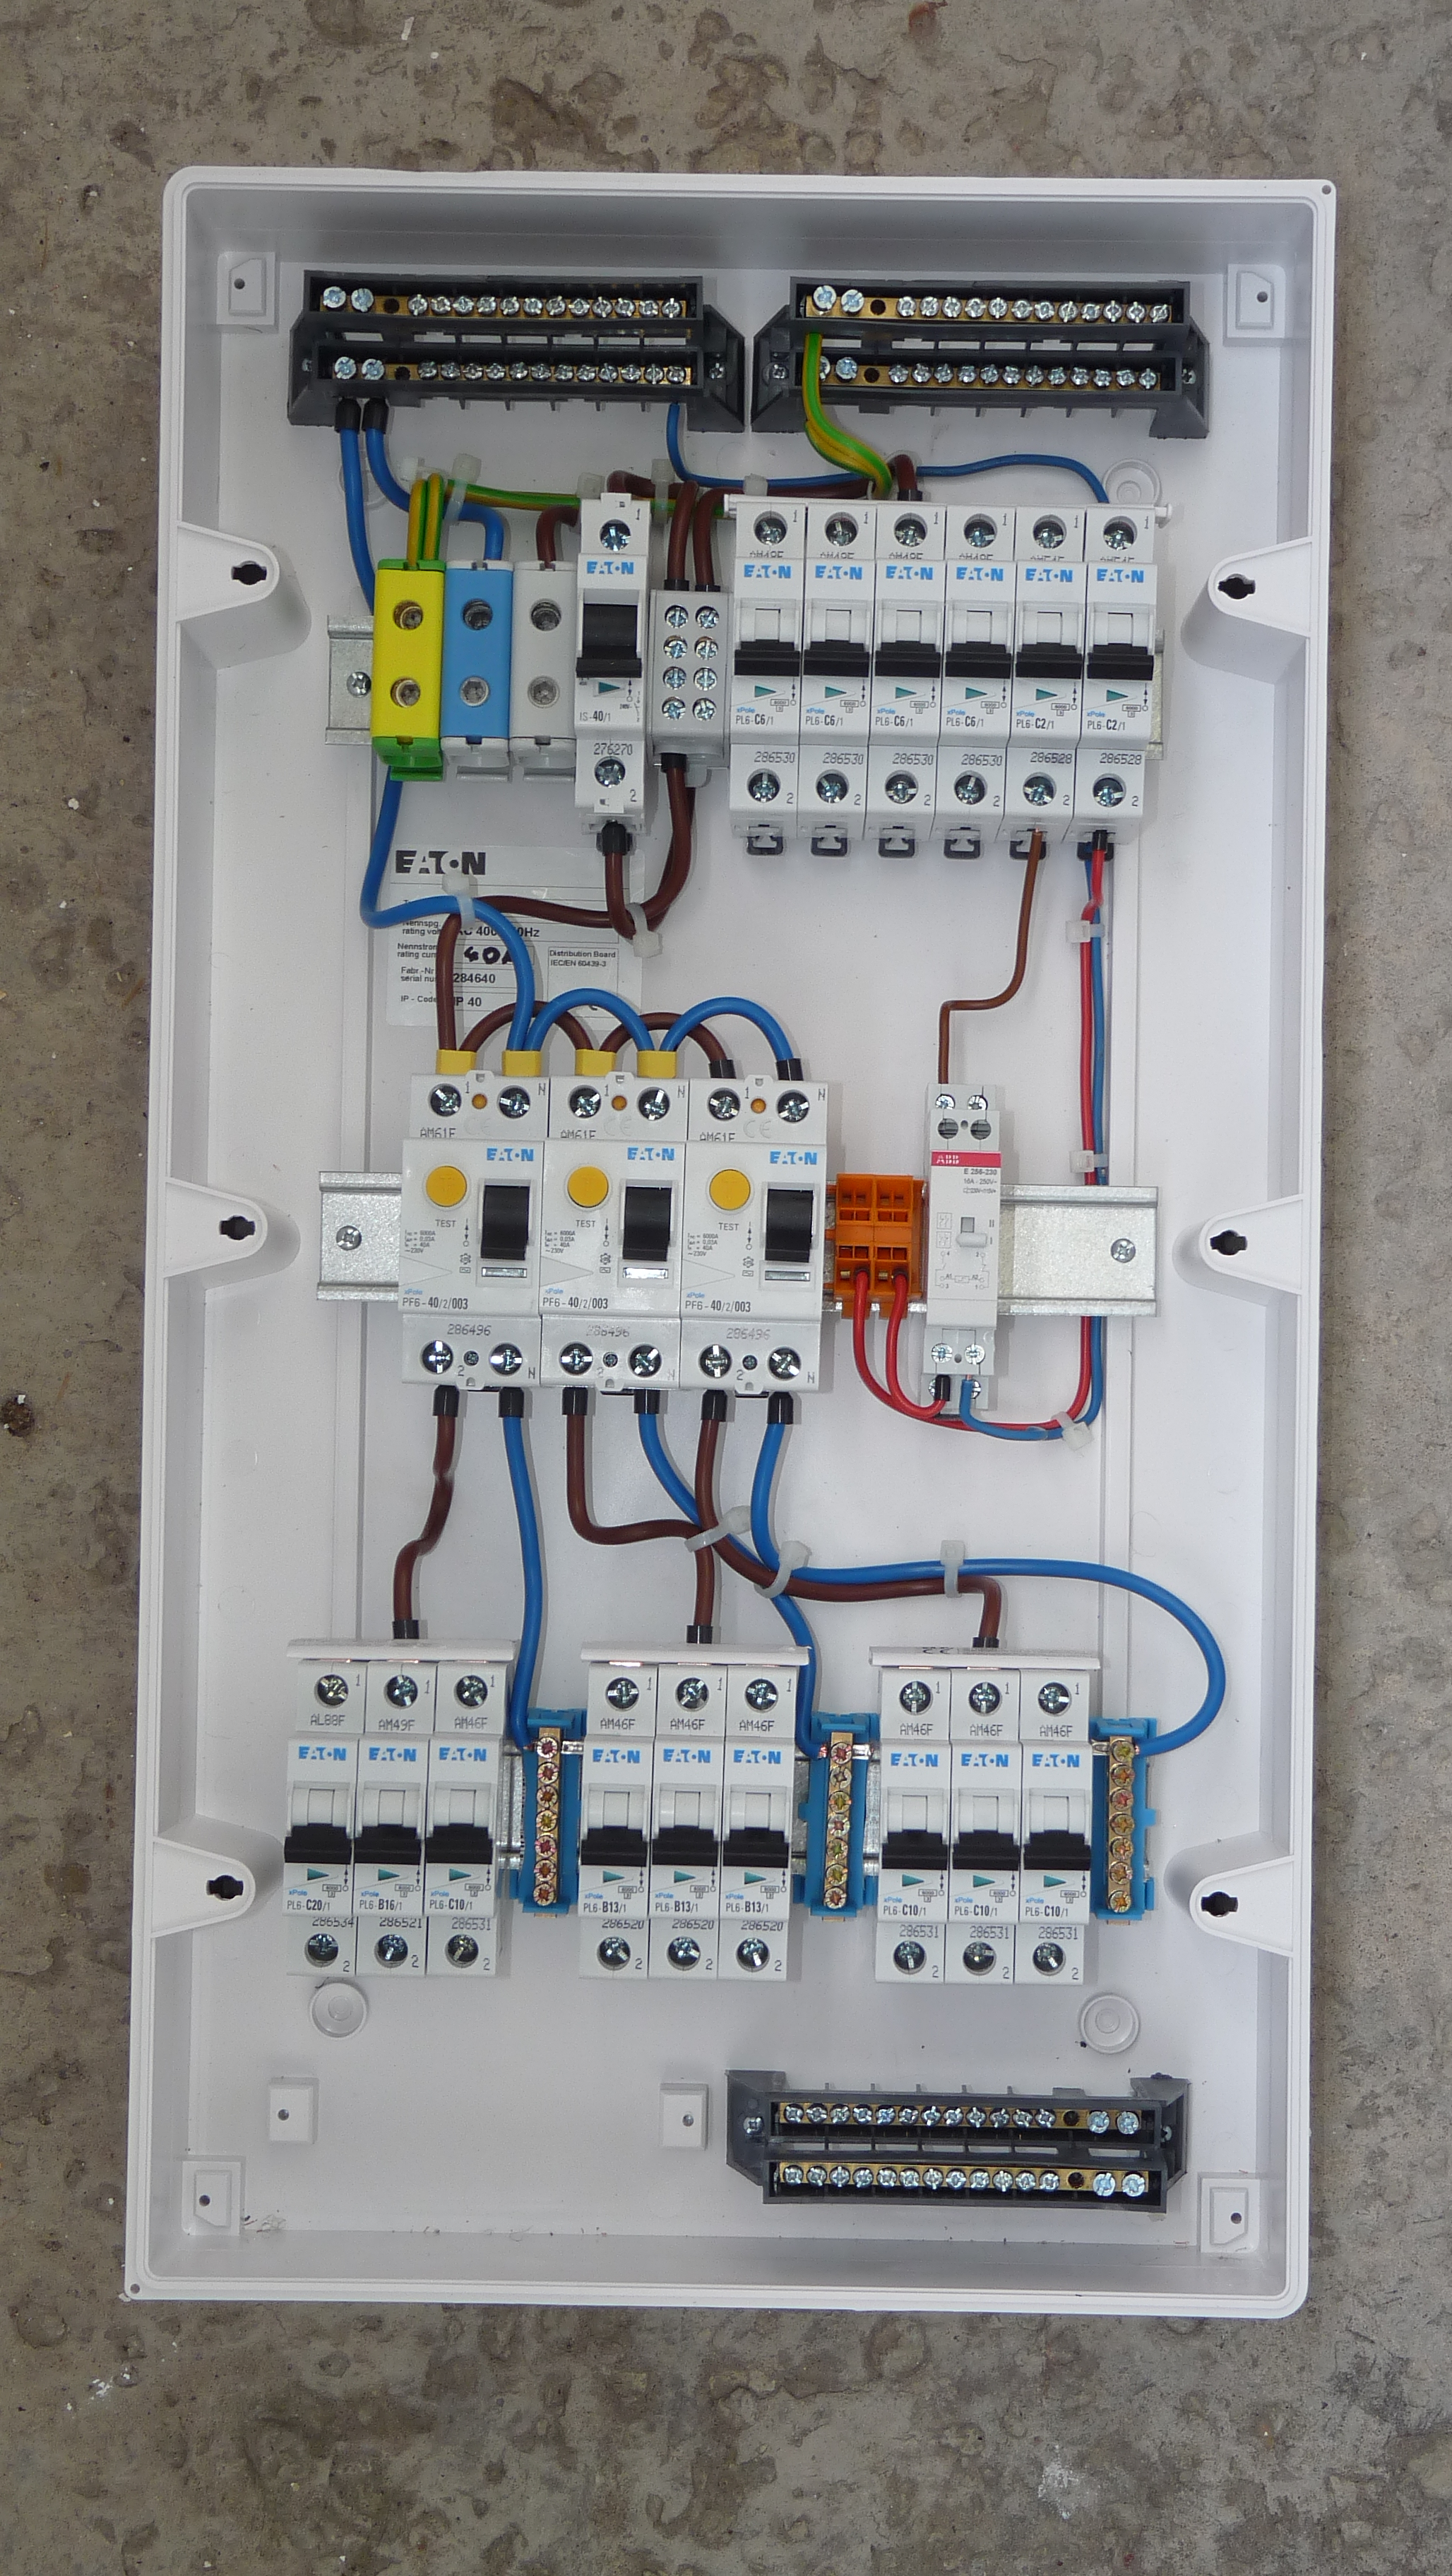 Filepaekaare 24 Wiring Diagram Of Apartment Fuse Box Holder Wikimedia Commons